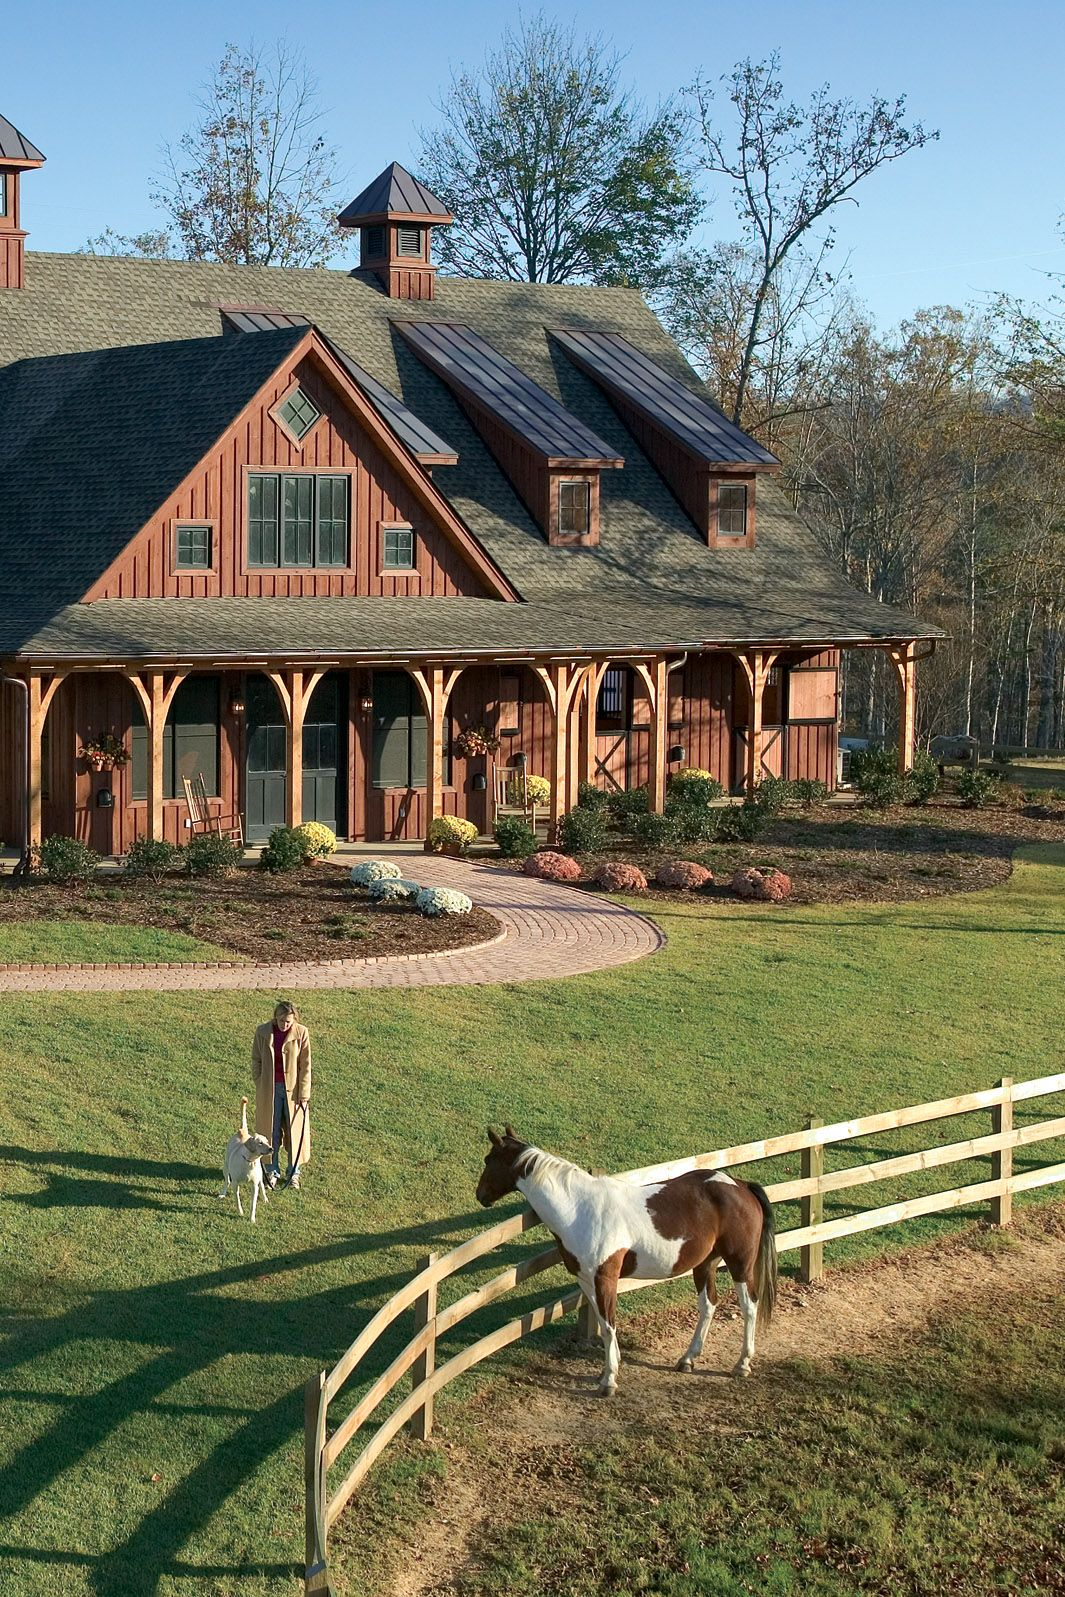 Best 25 centered riding ideas on pinterest role play for Beautiful ranch houses